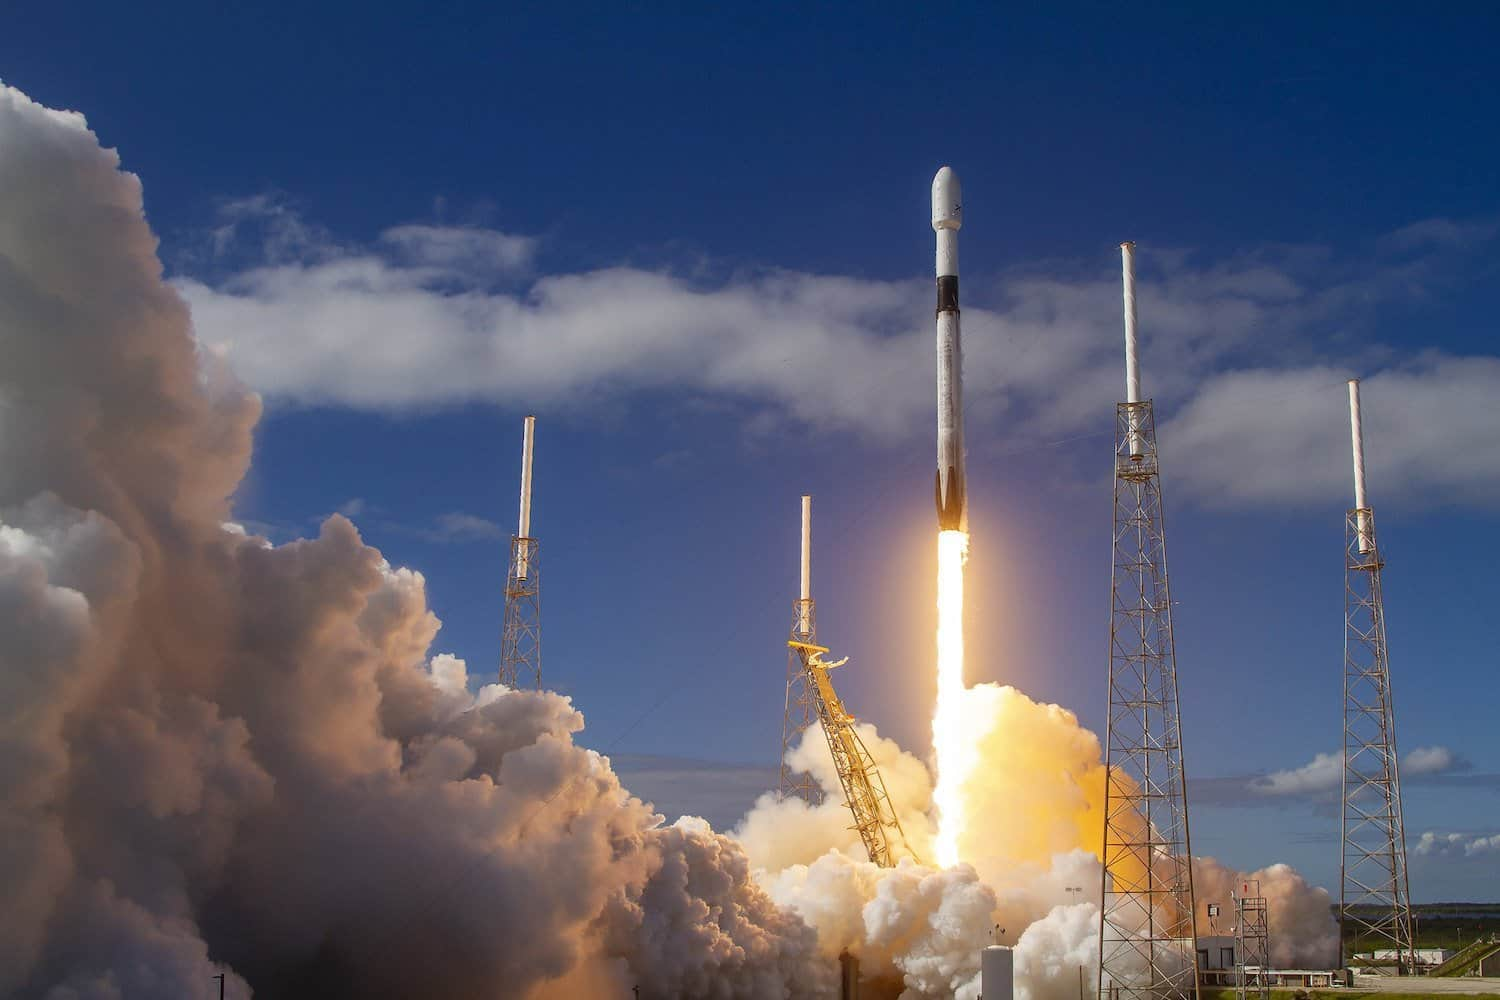 SpaceX Space Tourism Company - Falcon 9 Launch